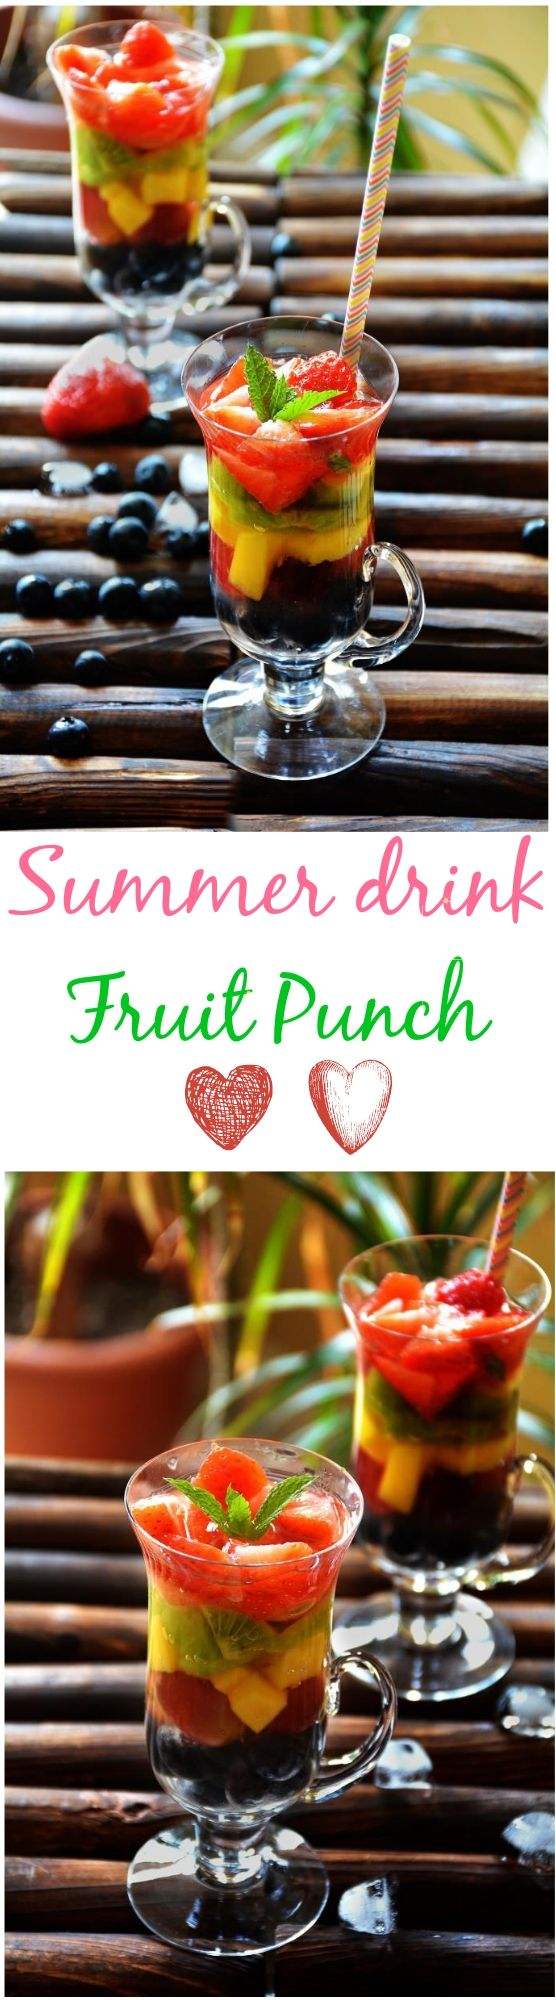 is fruit punch healthy pink fruit